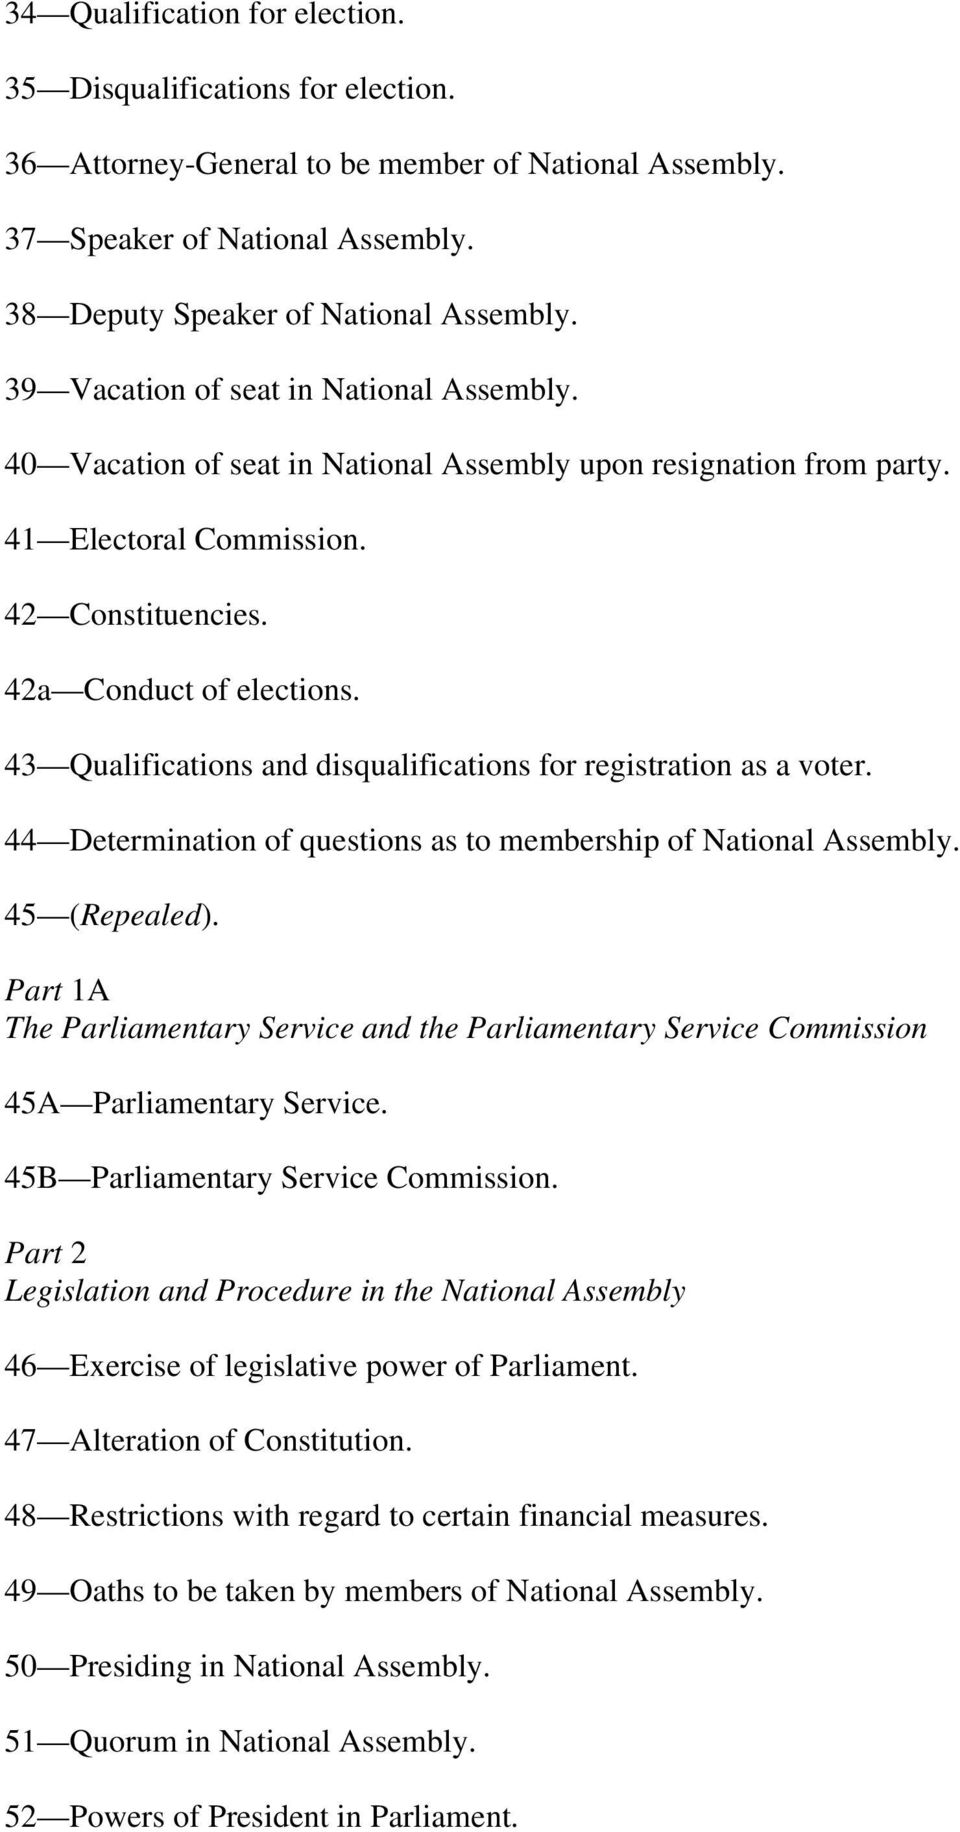 43 Qualifications and disqualifications for registration as a voter. 44 Determination of questions as to membership of National Assembly. 45 (Repealed).